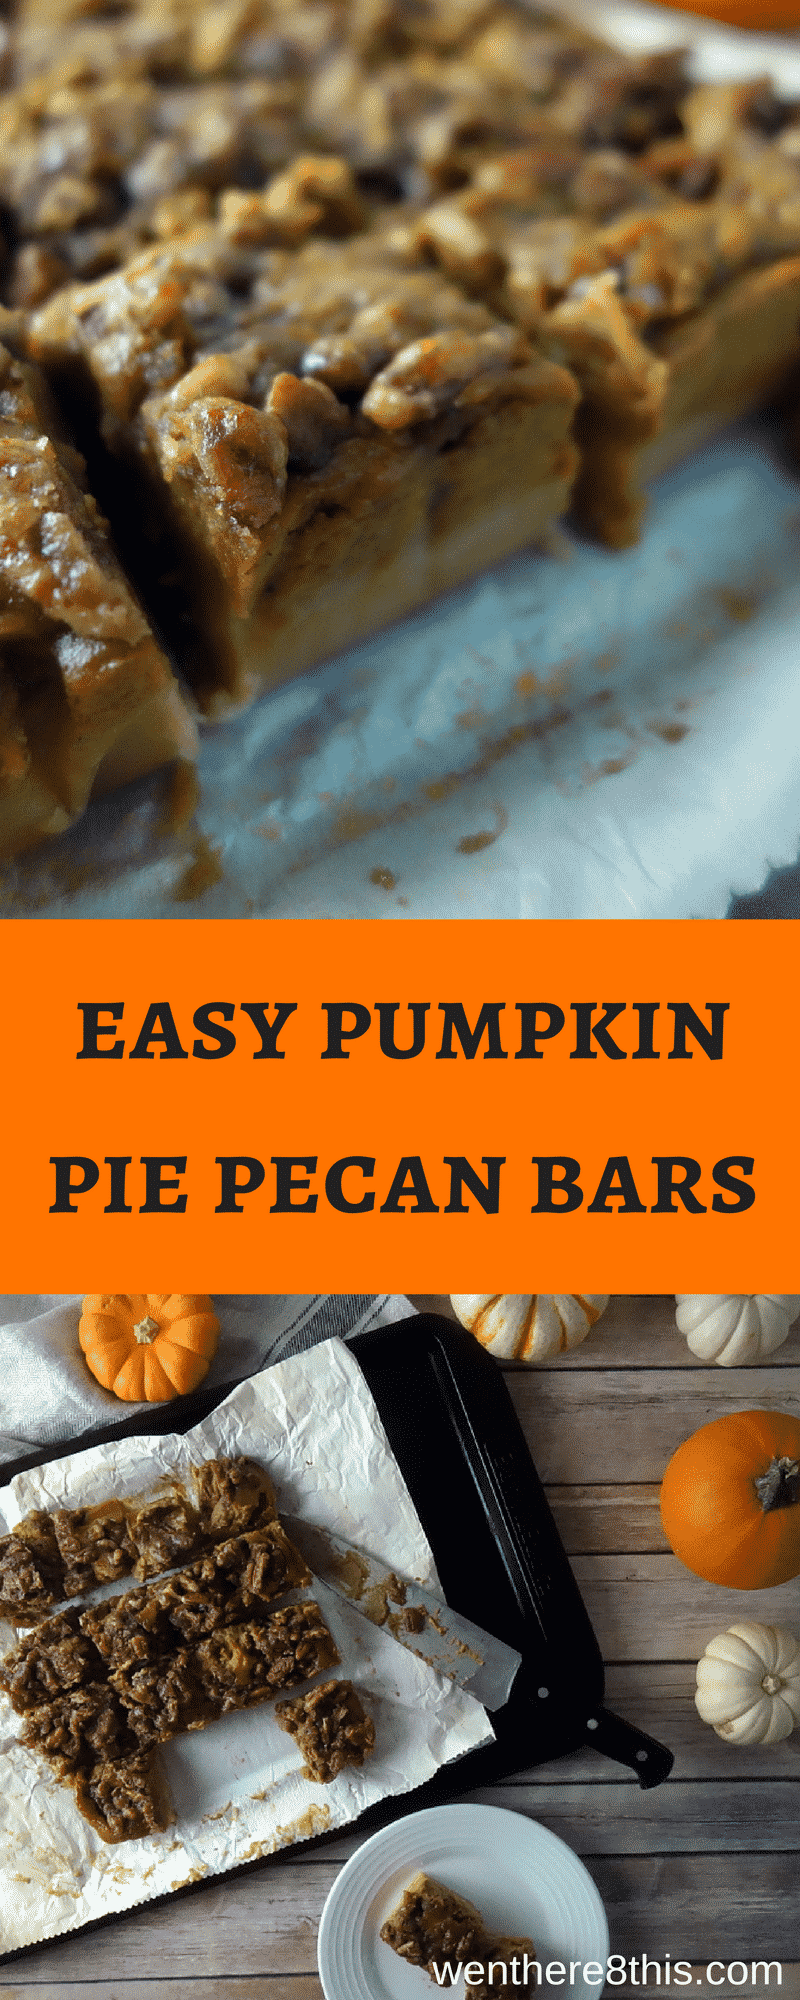 Rich, creamy EASY Pumpkin Pie Pecan Bars. Guys, these things are the best. Seriously, I was never a fan of pumpkin pie until now!pumpkin pie | shortbread crust easy | pumpkin pie bars easy | pumpkin pecan bars | pecan pumpkin pie recipe | homemade pumpkin pie bars | Pumpkin streusel bars | pumpkin pecan pie bars | easy pumpkin bars